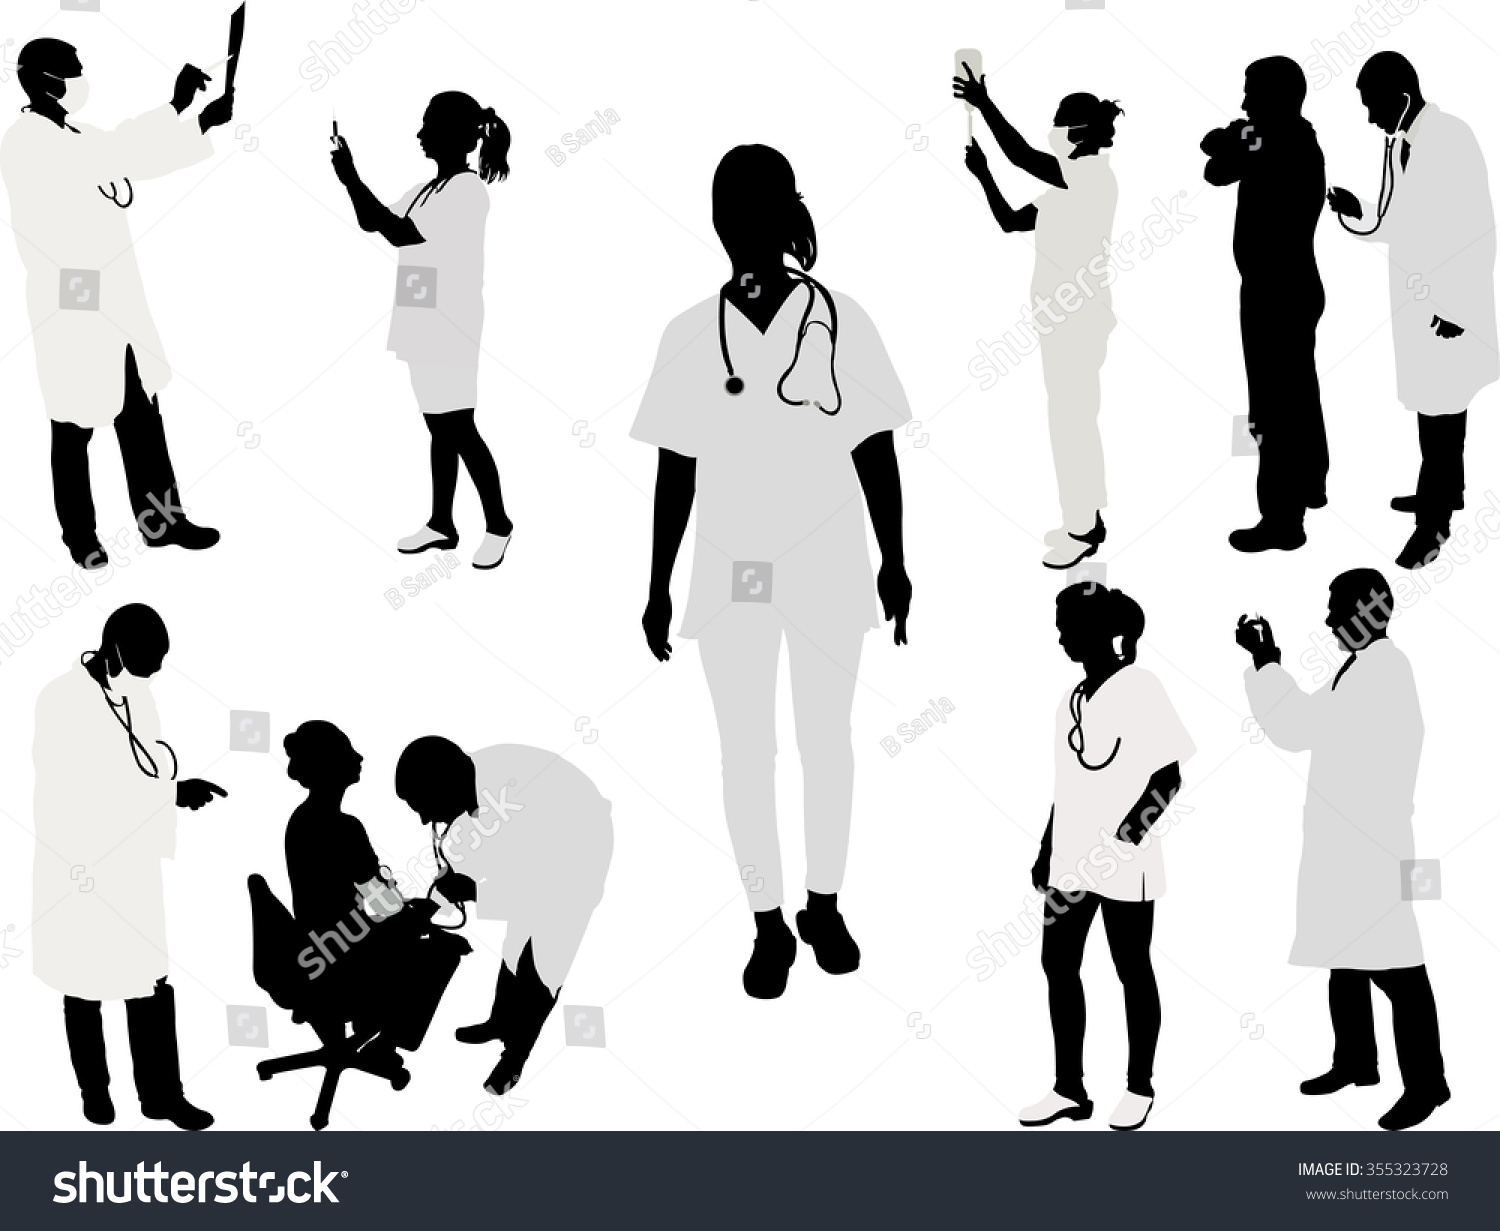 Doctor And Patient Silhouette - Vector Illustration 1 ...